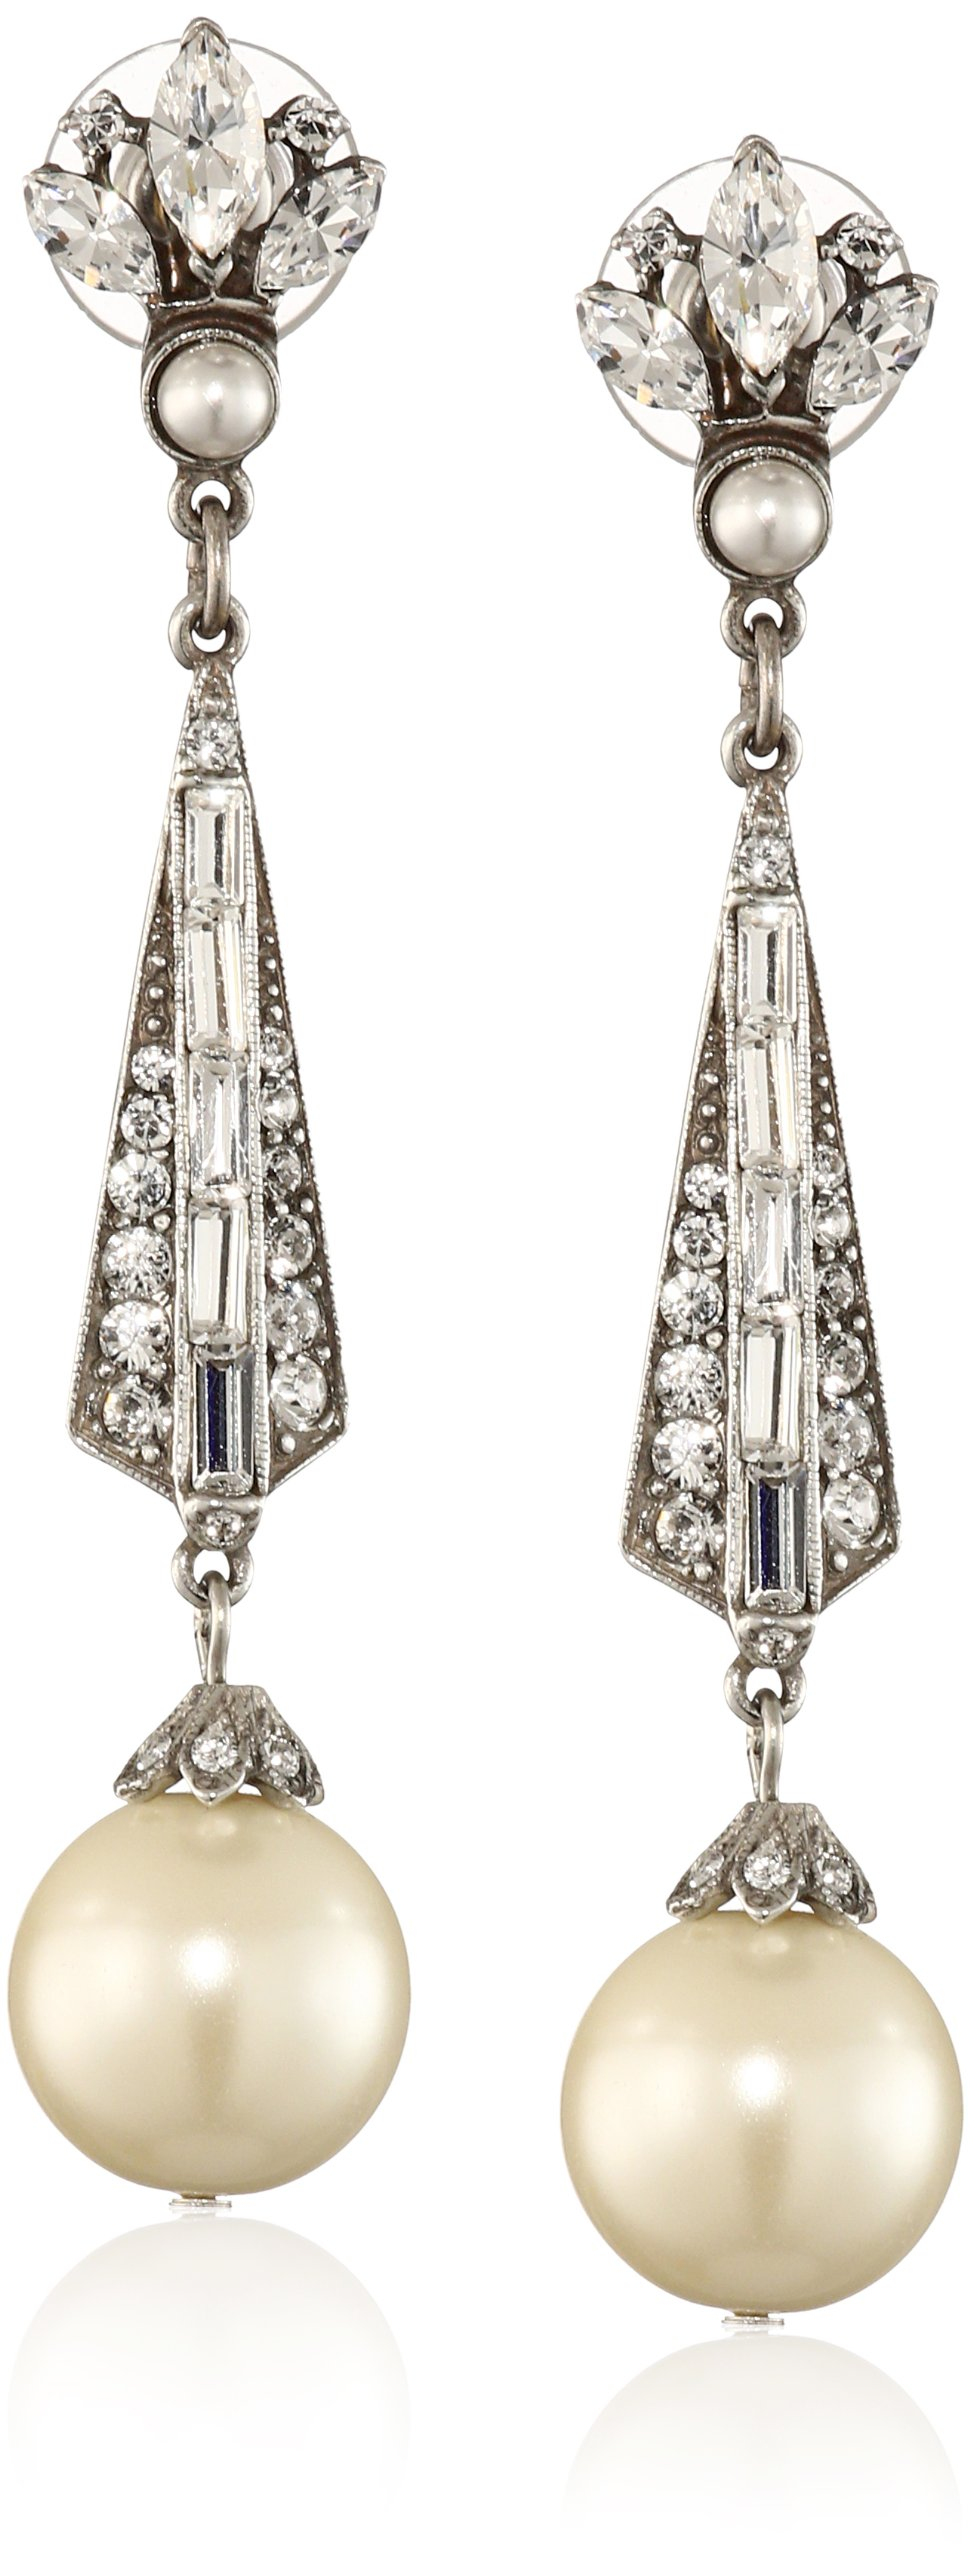 Ben-Amun Jewelry Swarovski Crystal and Glass Pearl Drop Earrings for Bridal Wedding Anniversary